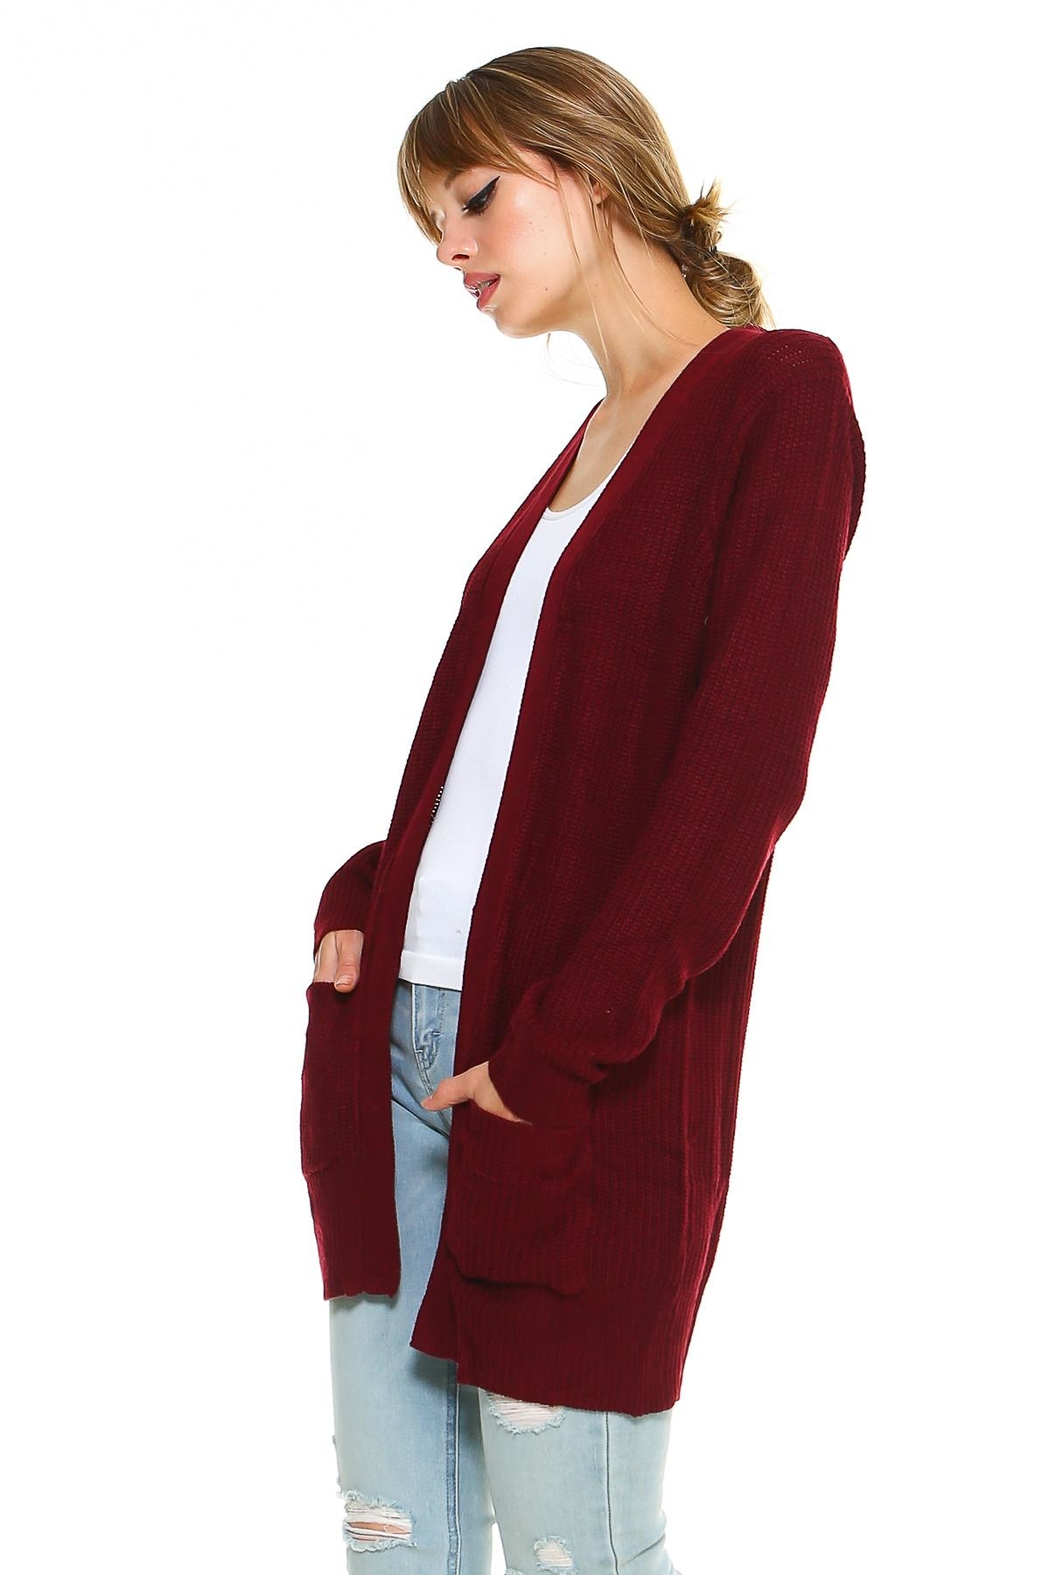 Miley and Molly 2 Pockets Sweater Cardigan For Women - Front Full Image